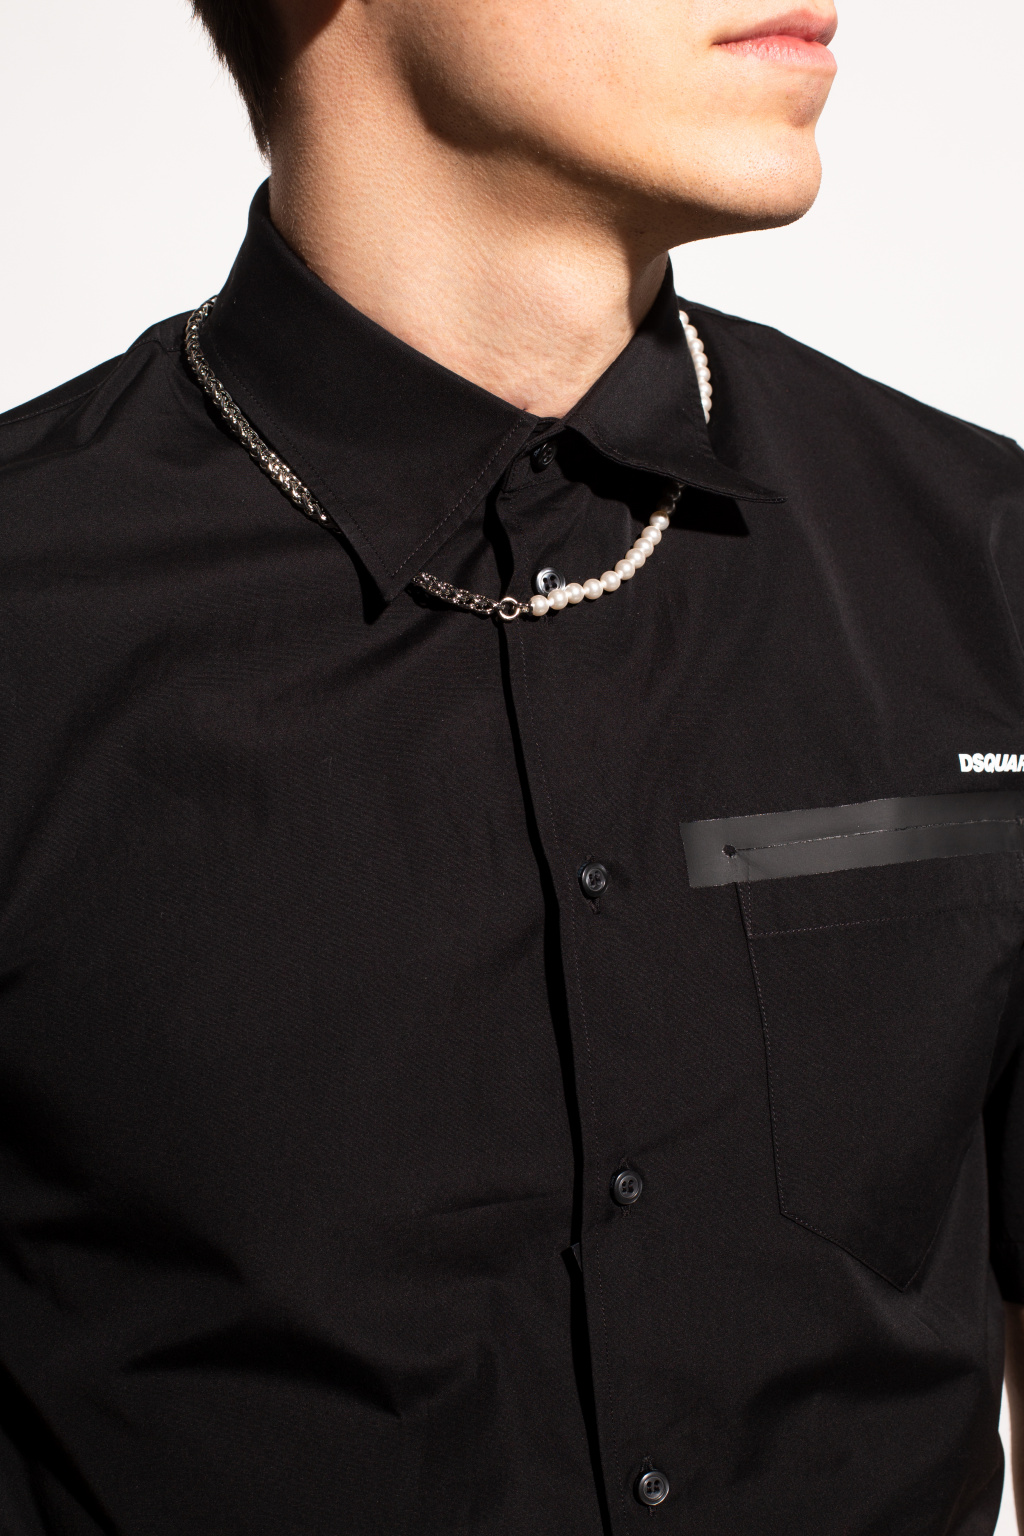 Dsquared2 Necklace with logo